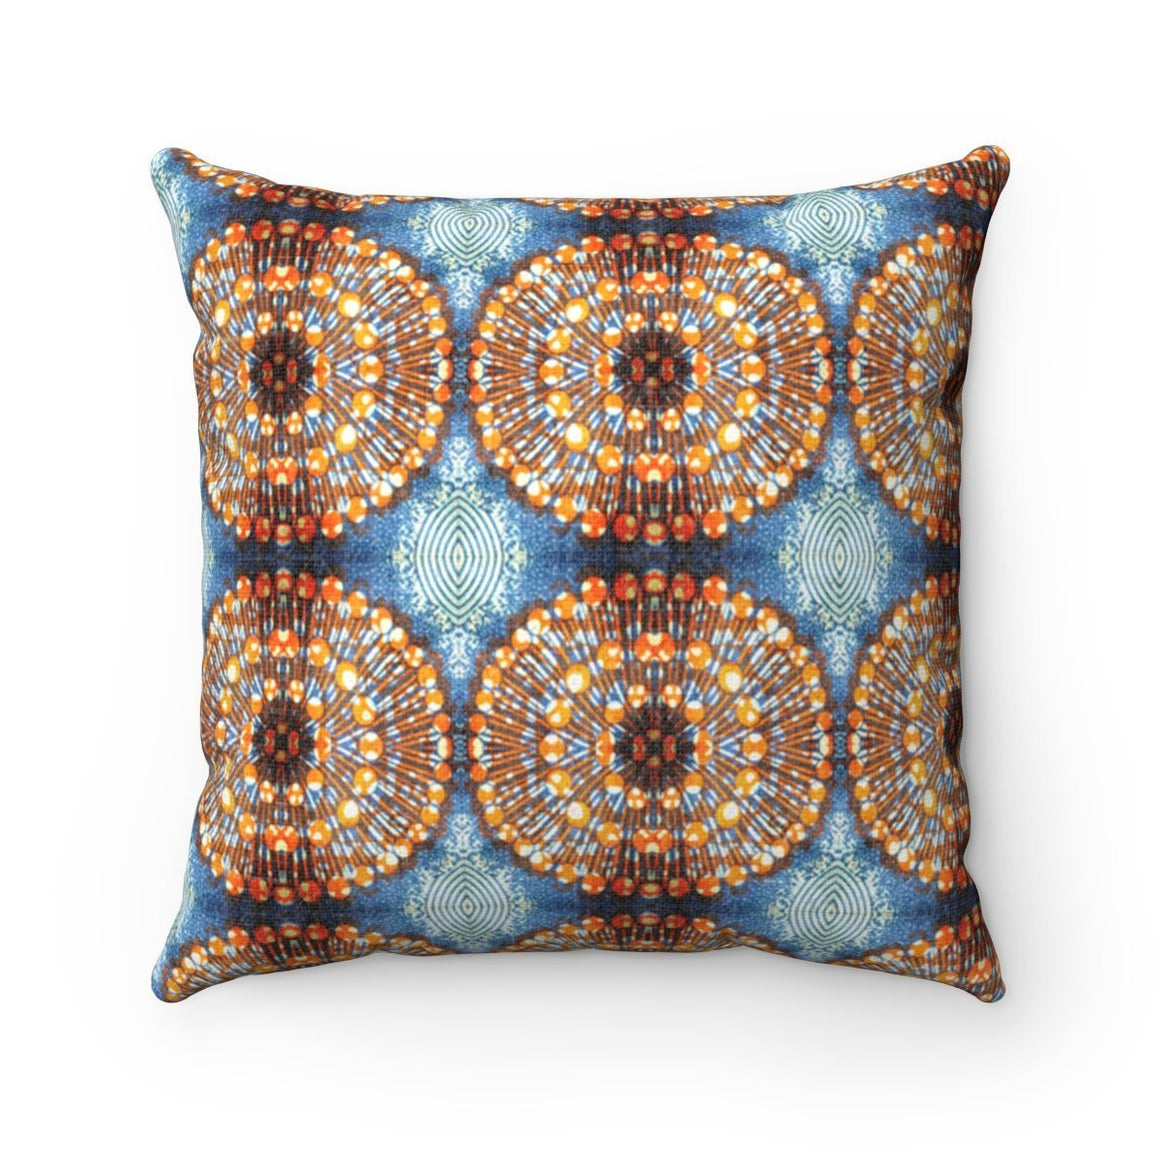 Star Bright Pillow Home Decor 14x14